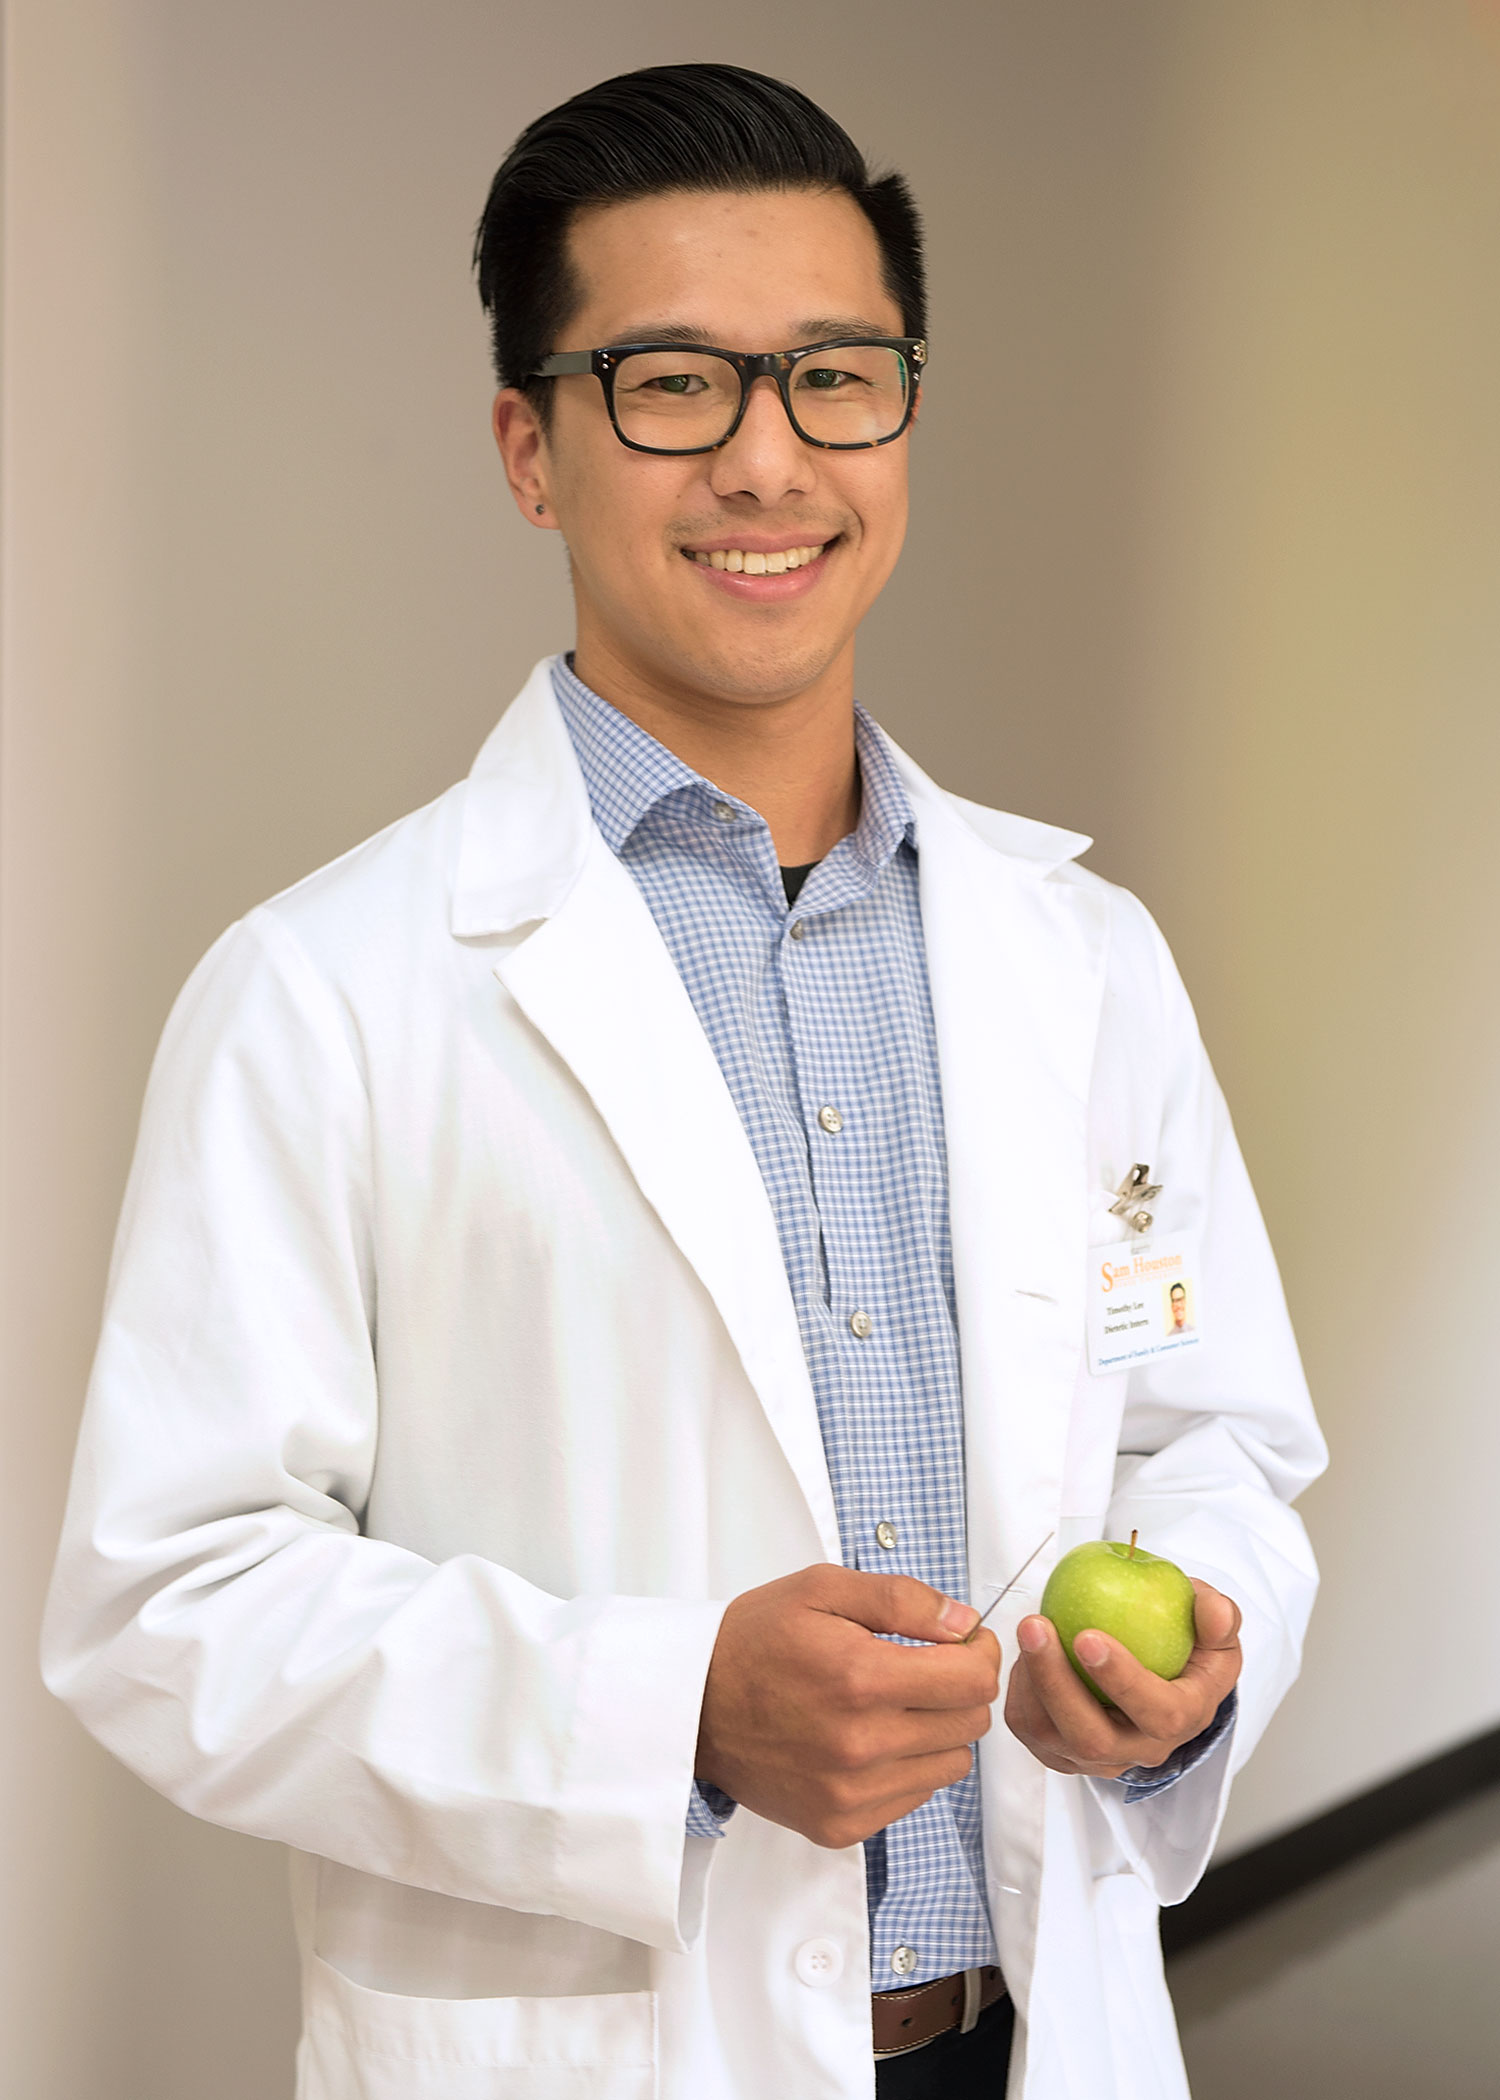 Student wearing a lab coat, holding a green apple